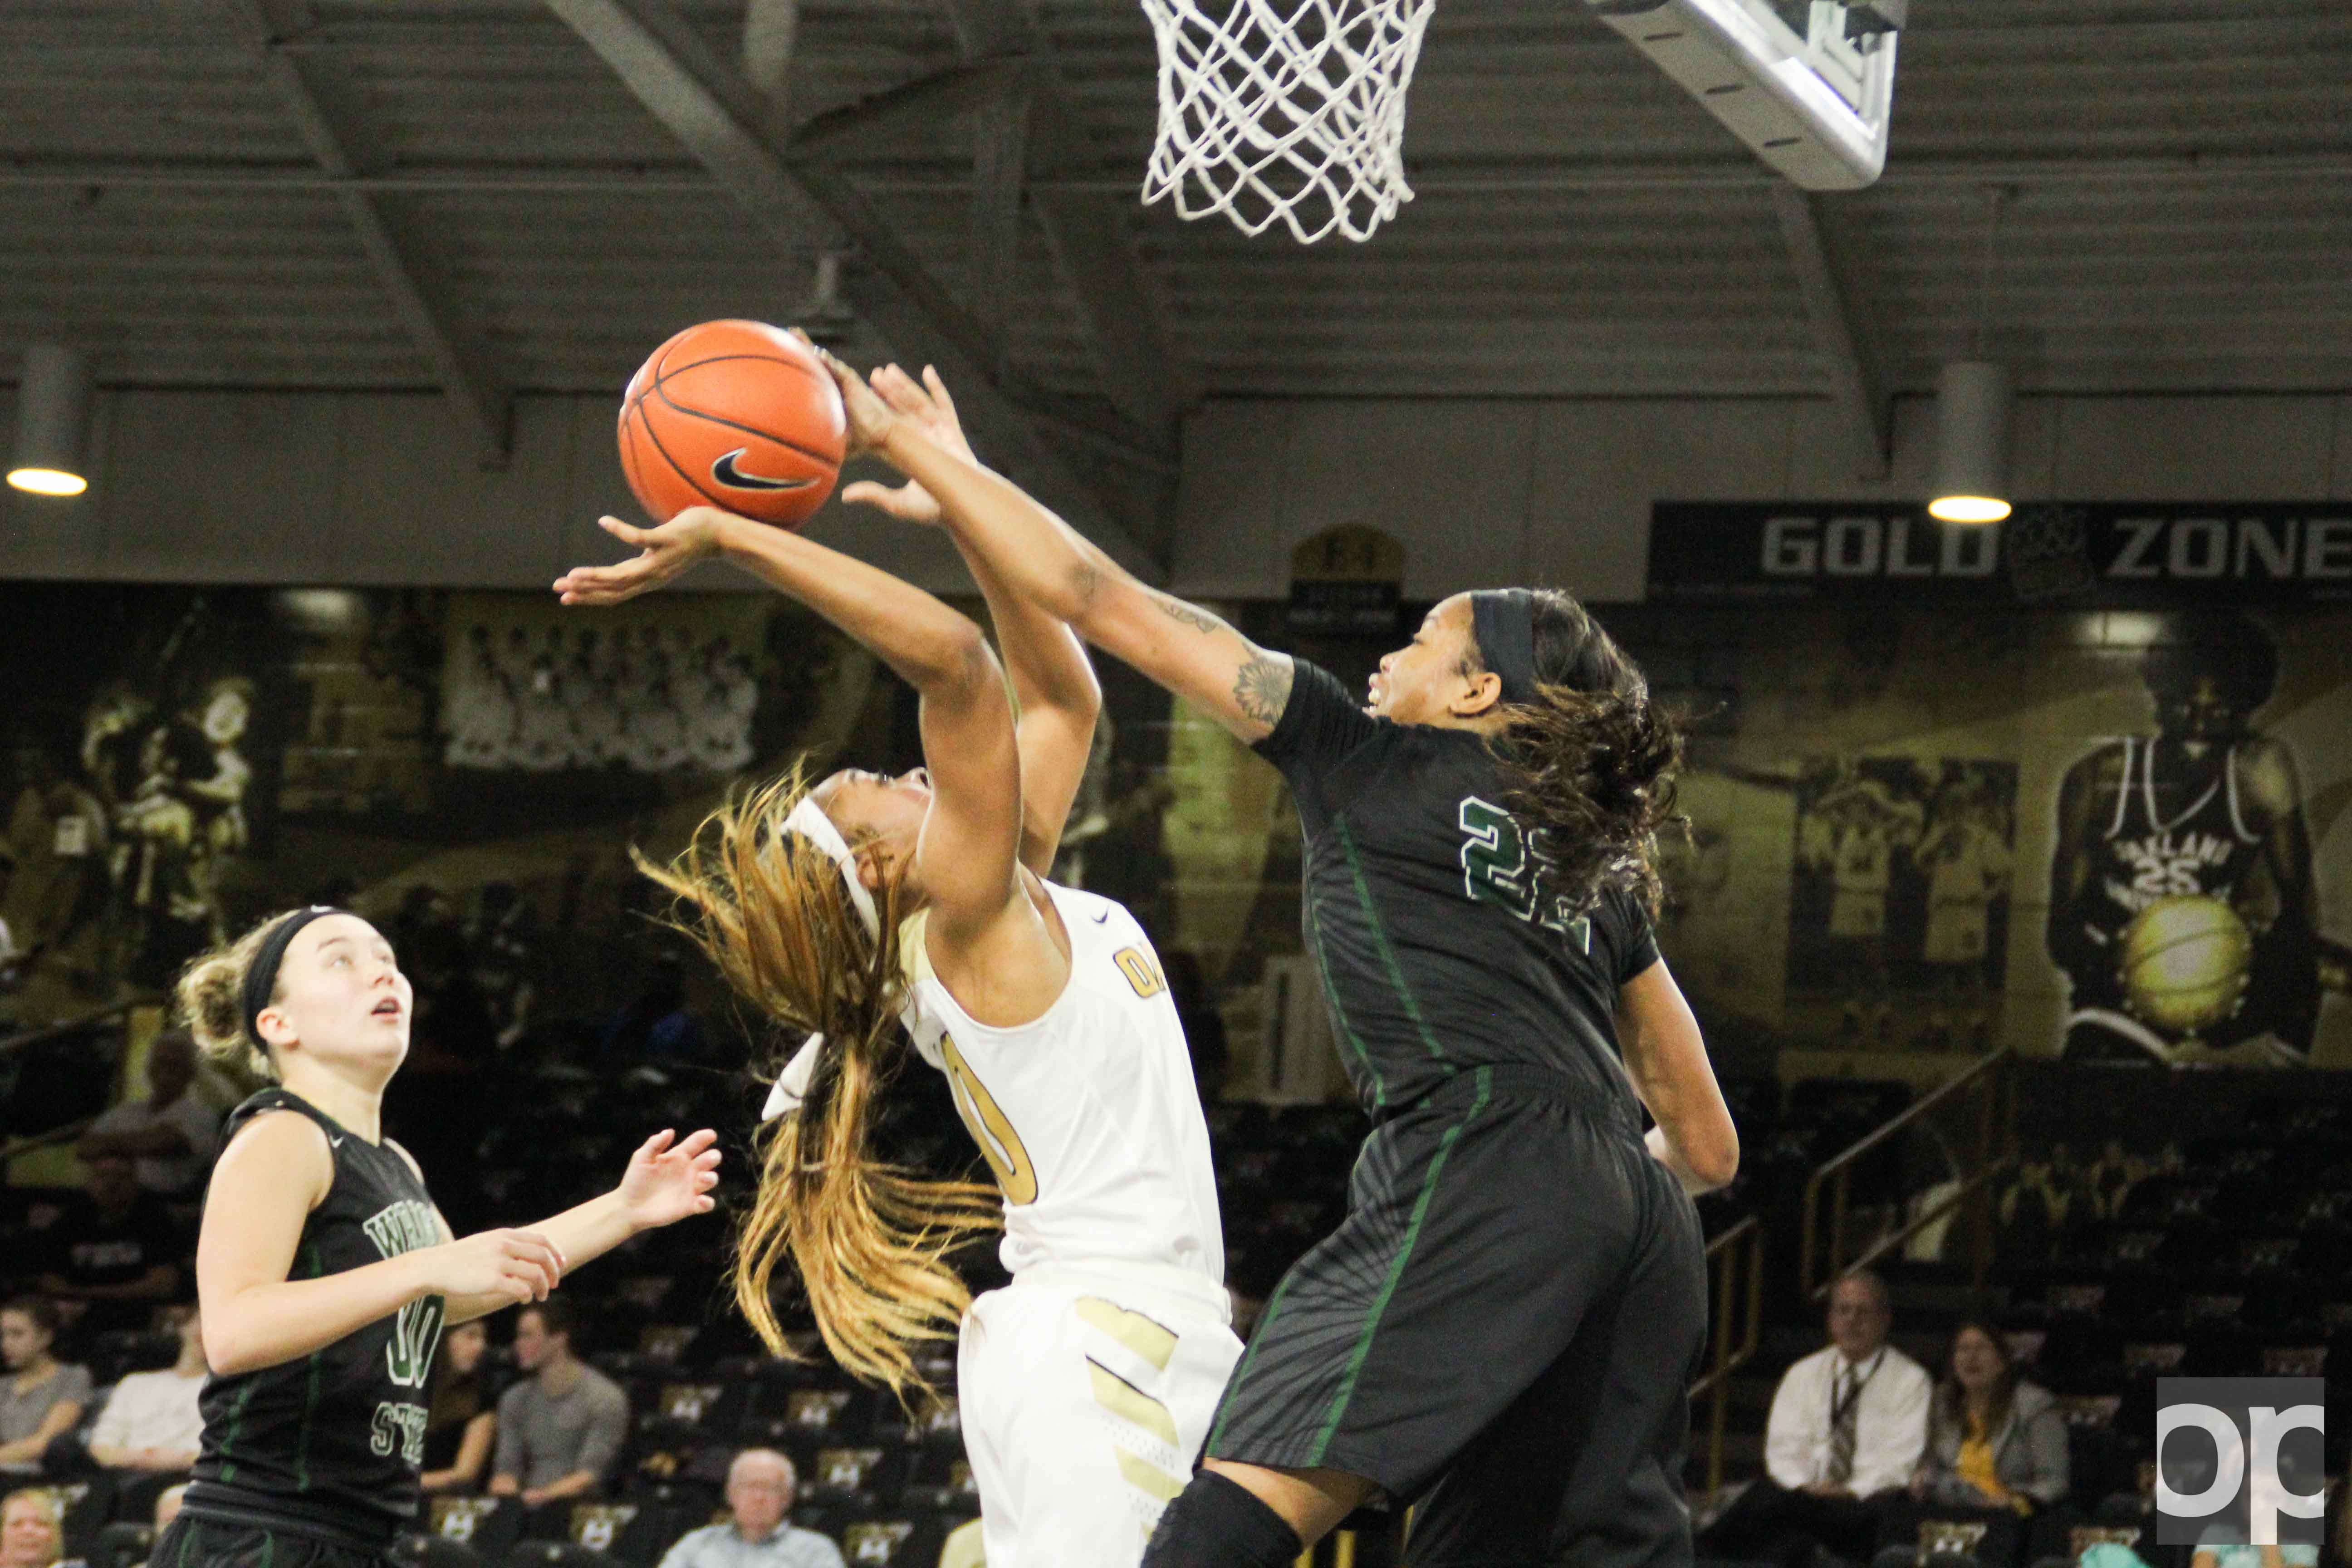 Wright State's Chelsea Welch led the team with 18 points and Oakland Taylor Jones led with 17 points Monday night at the O'rena. The Raiders defeated the Golden Grizzlies 73-61.